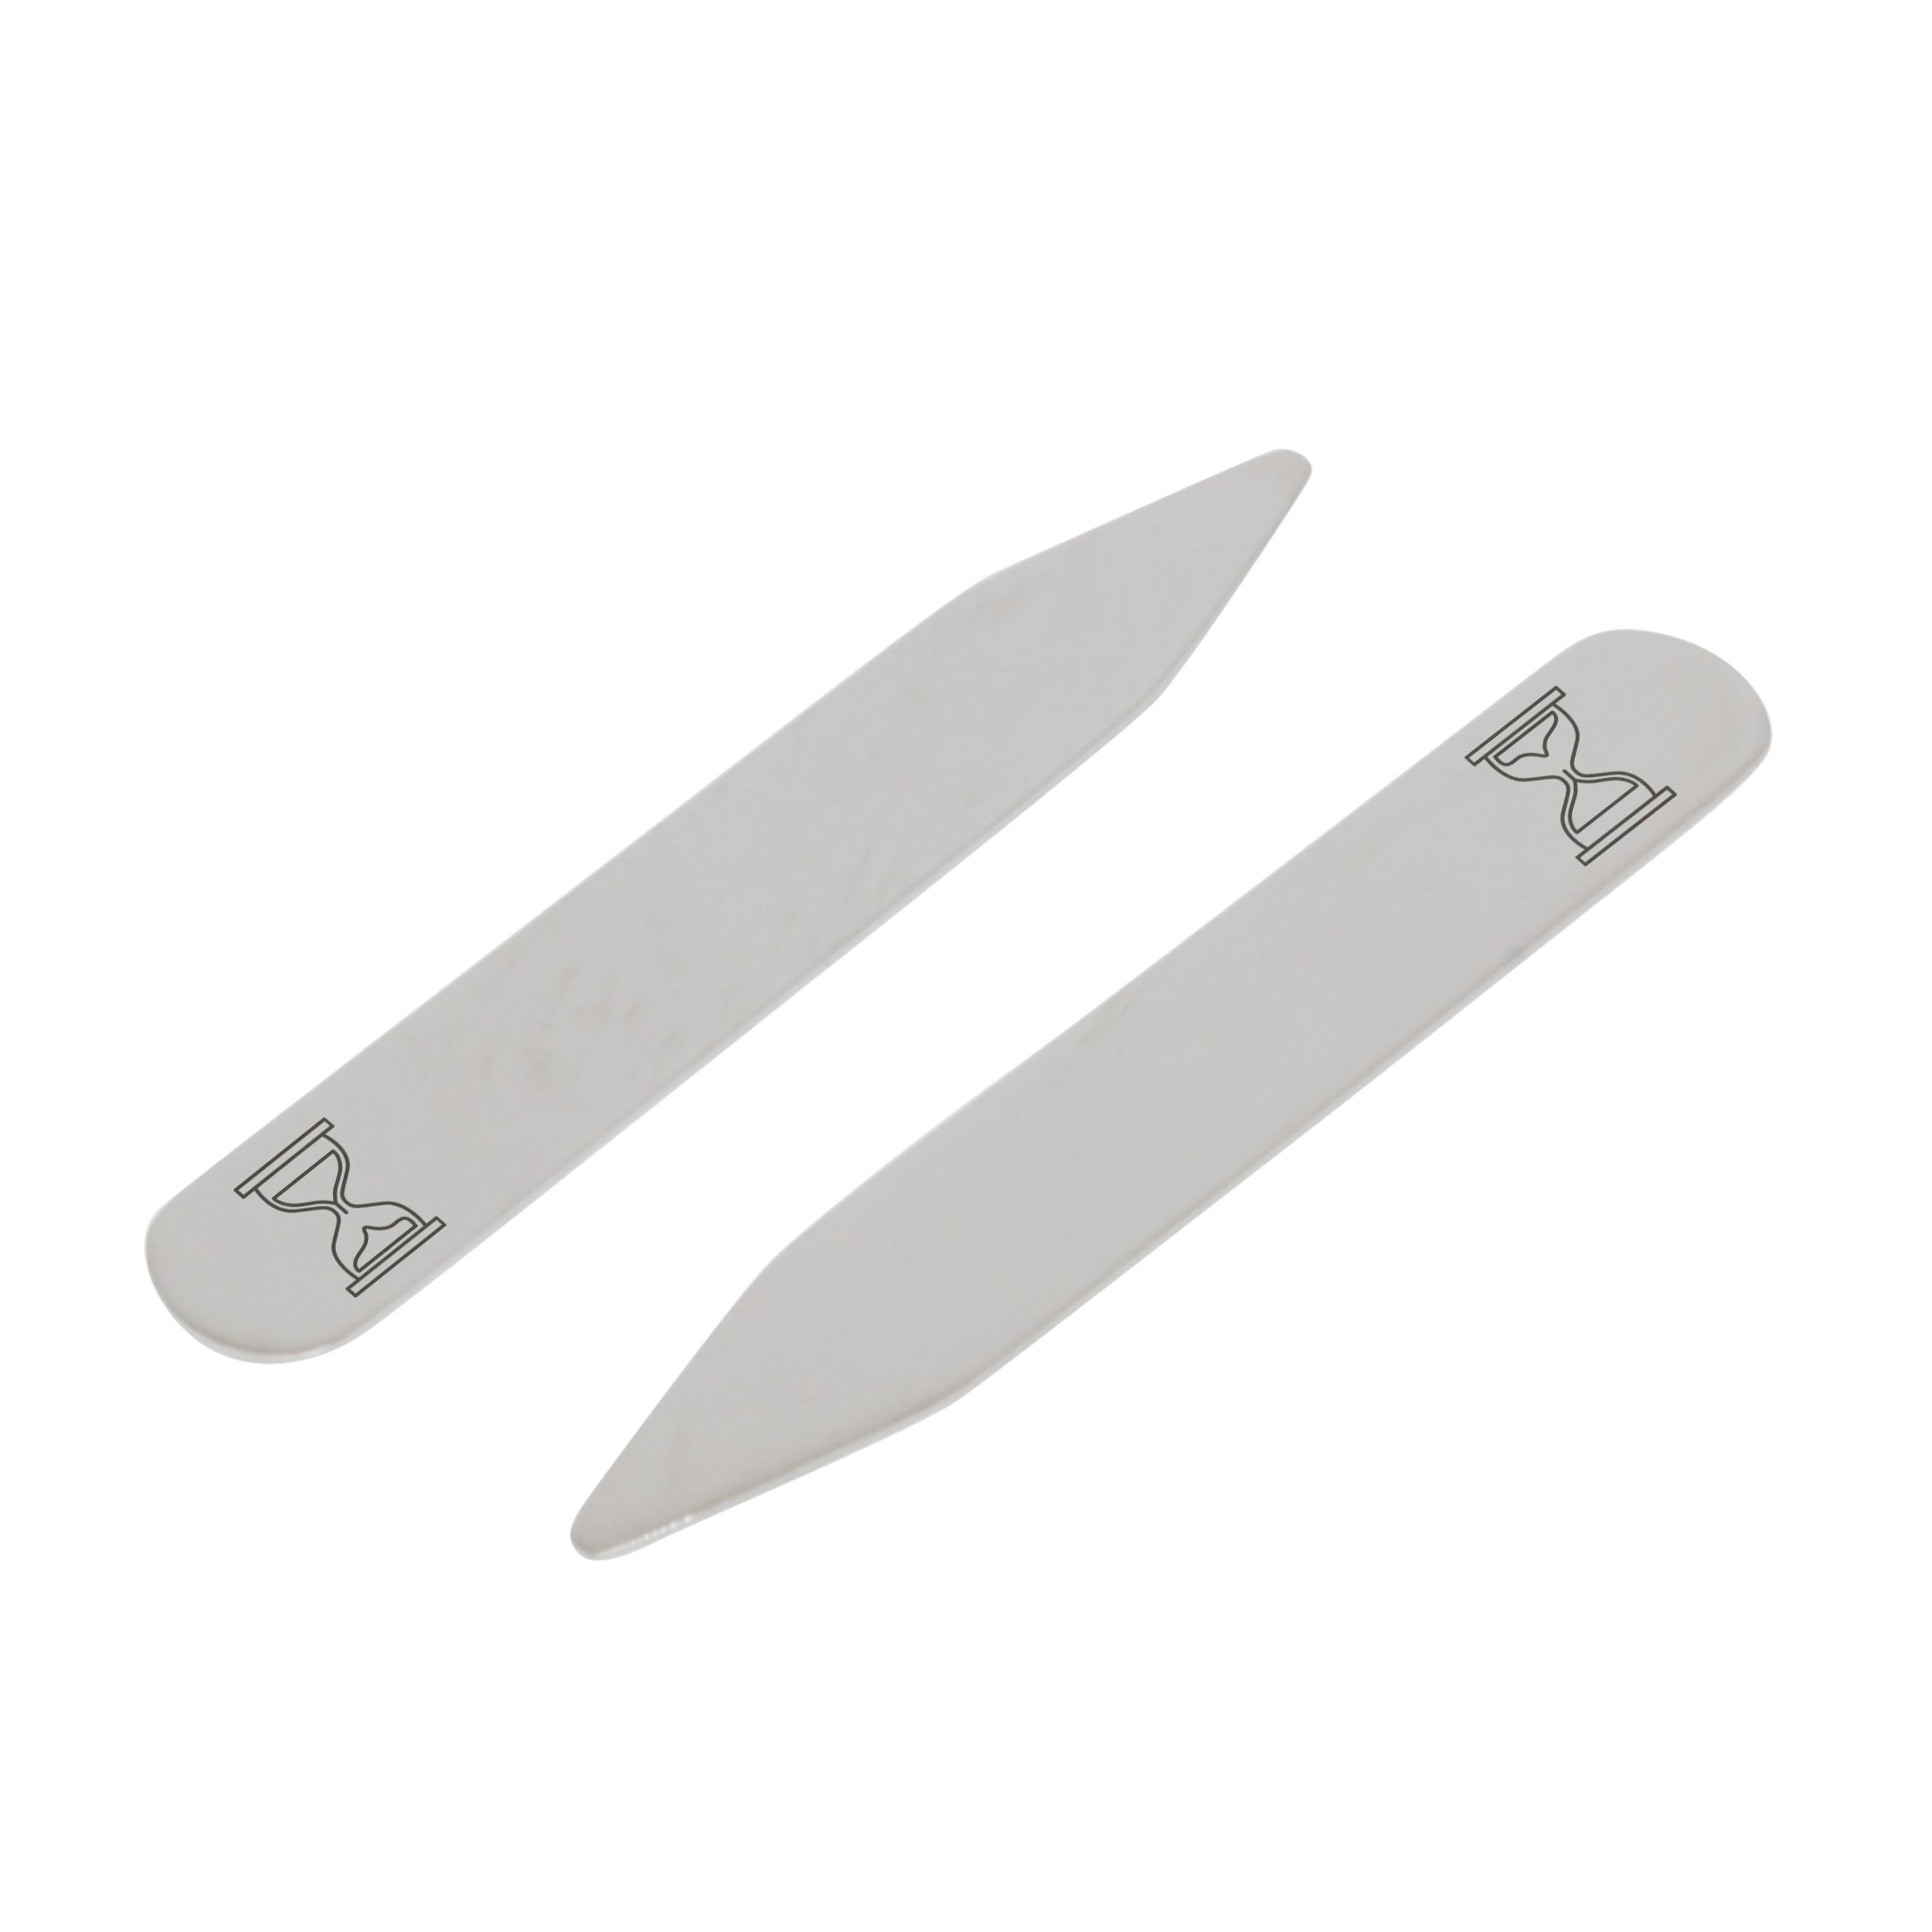 MODERN GOODS SHOP Stainless Steel Collar Stays With Laser Engraved Hourglass Design - 2.5 Inch Metal Collar Stiffeners - Made In USA